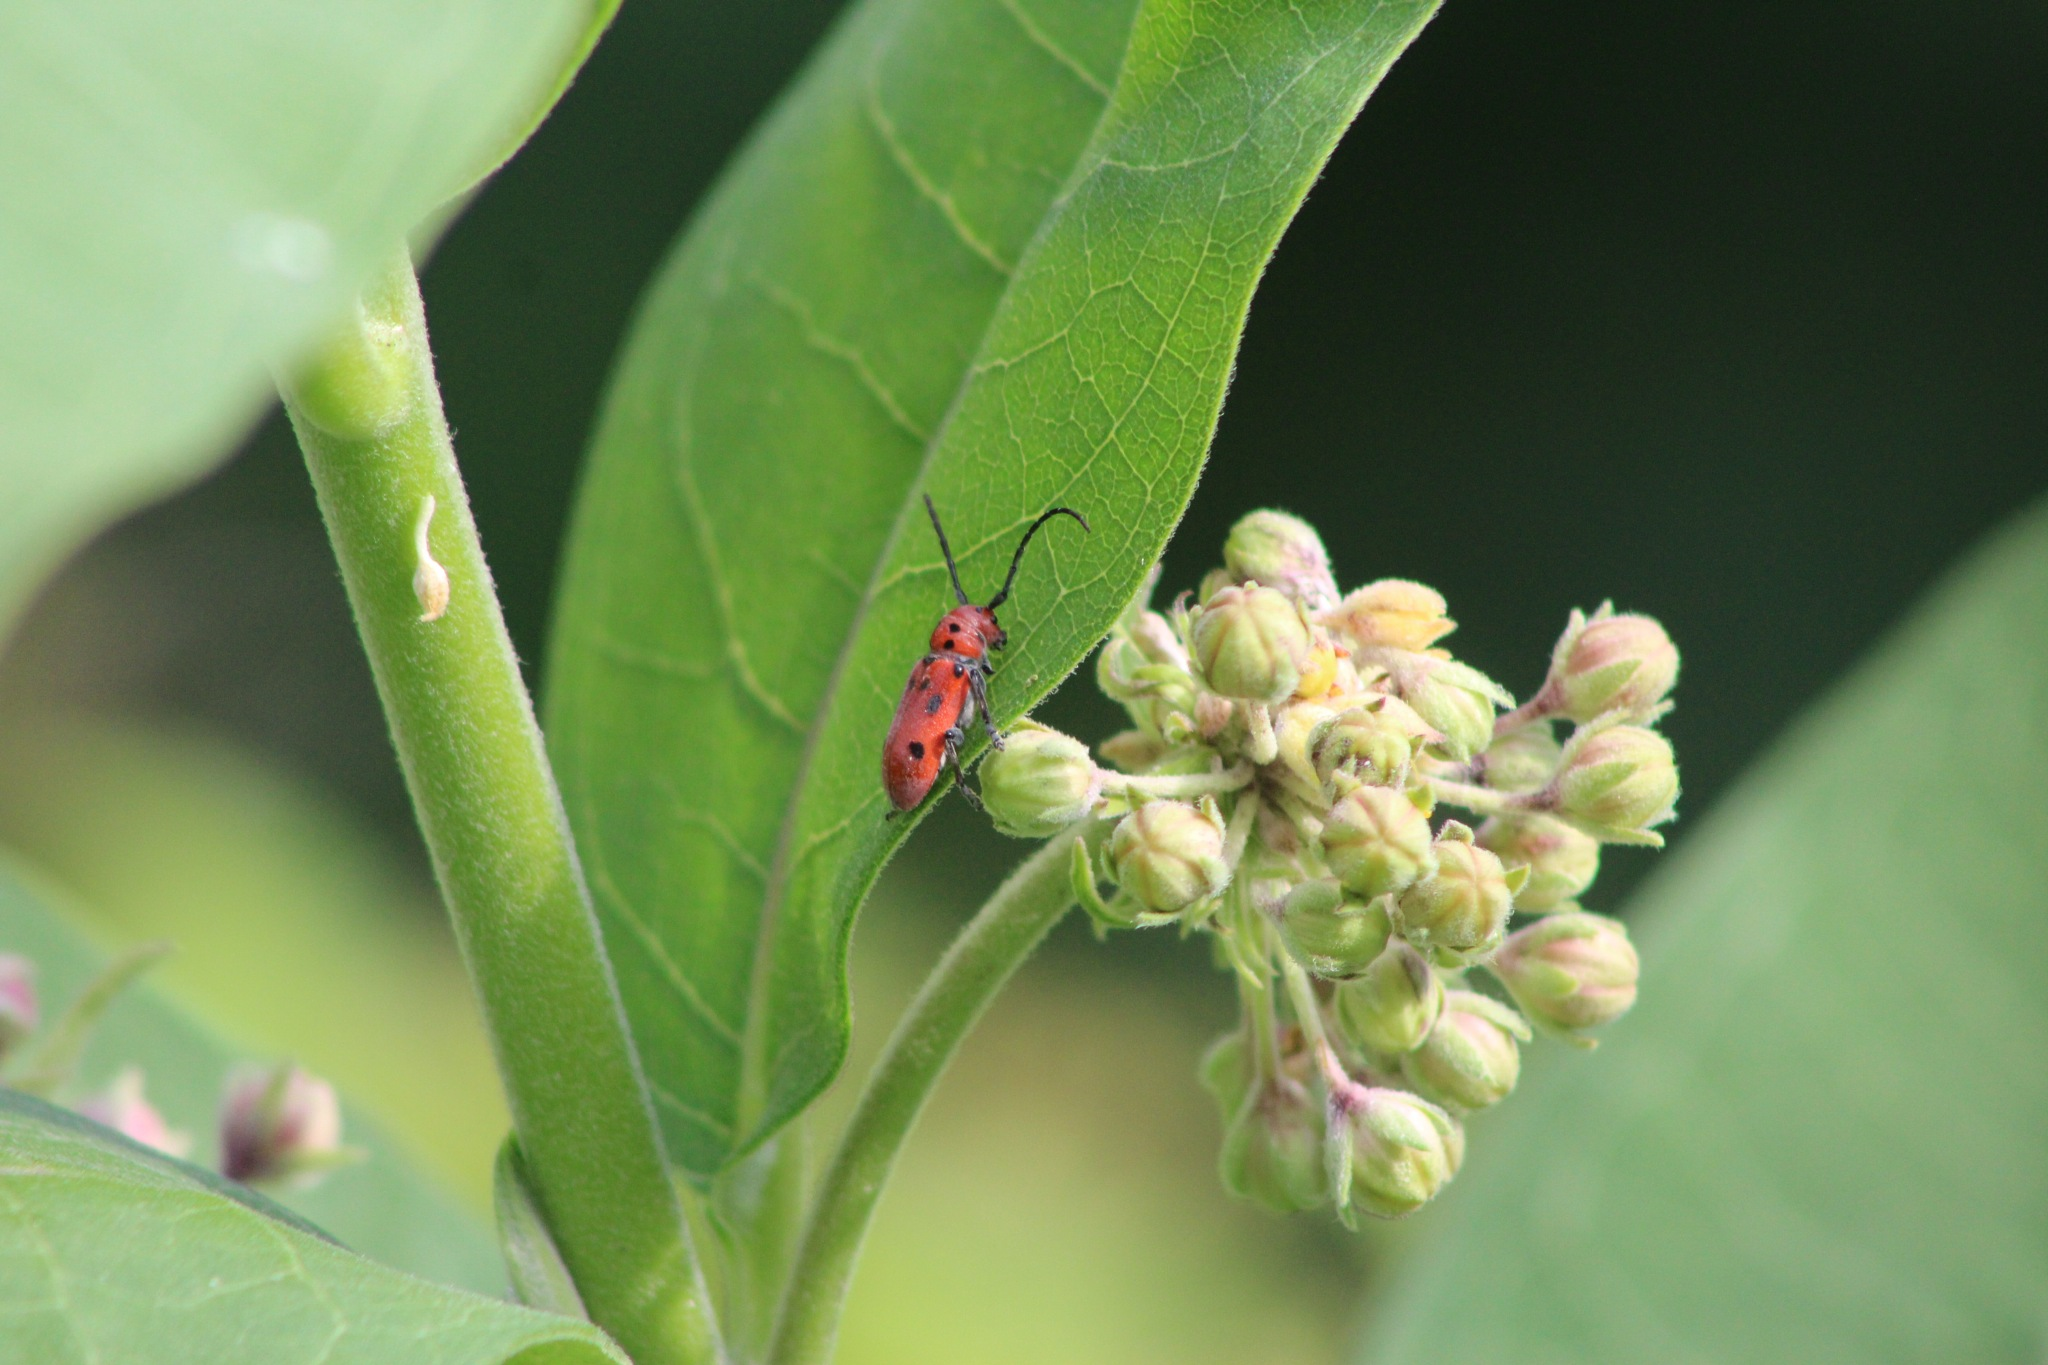 Red Beetle by Find My Beauty in the Chaos